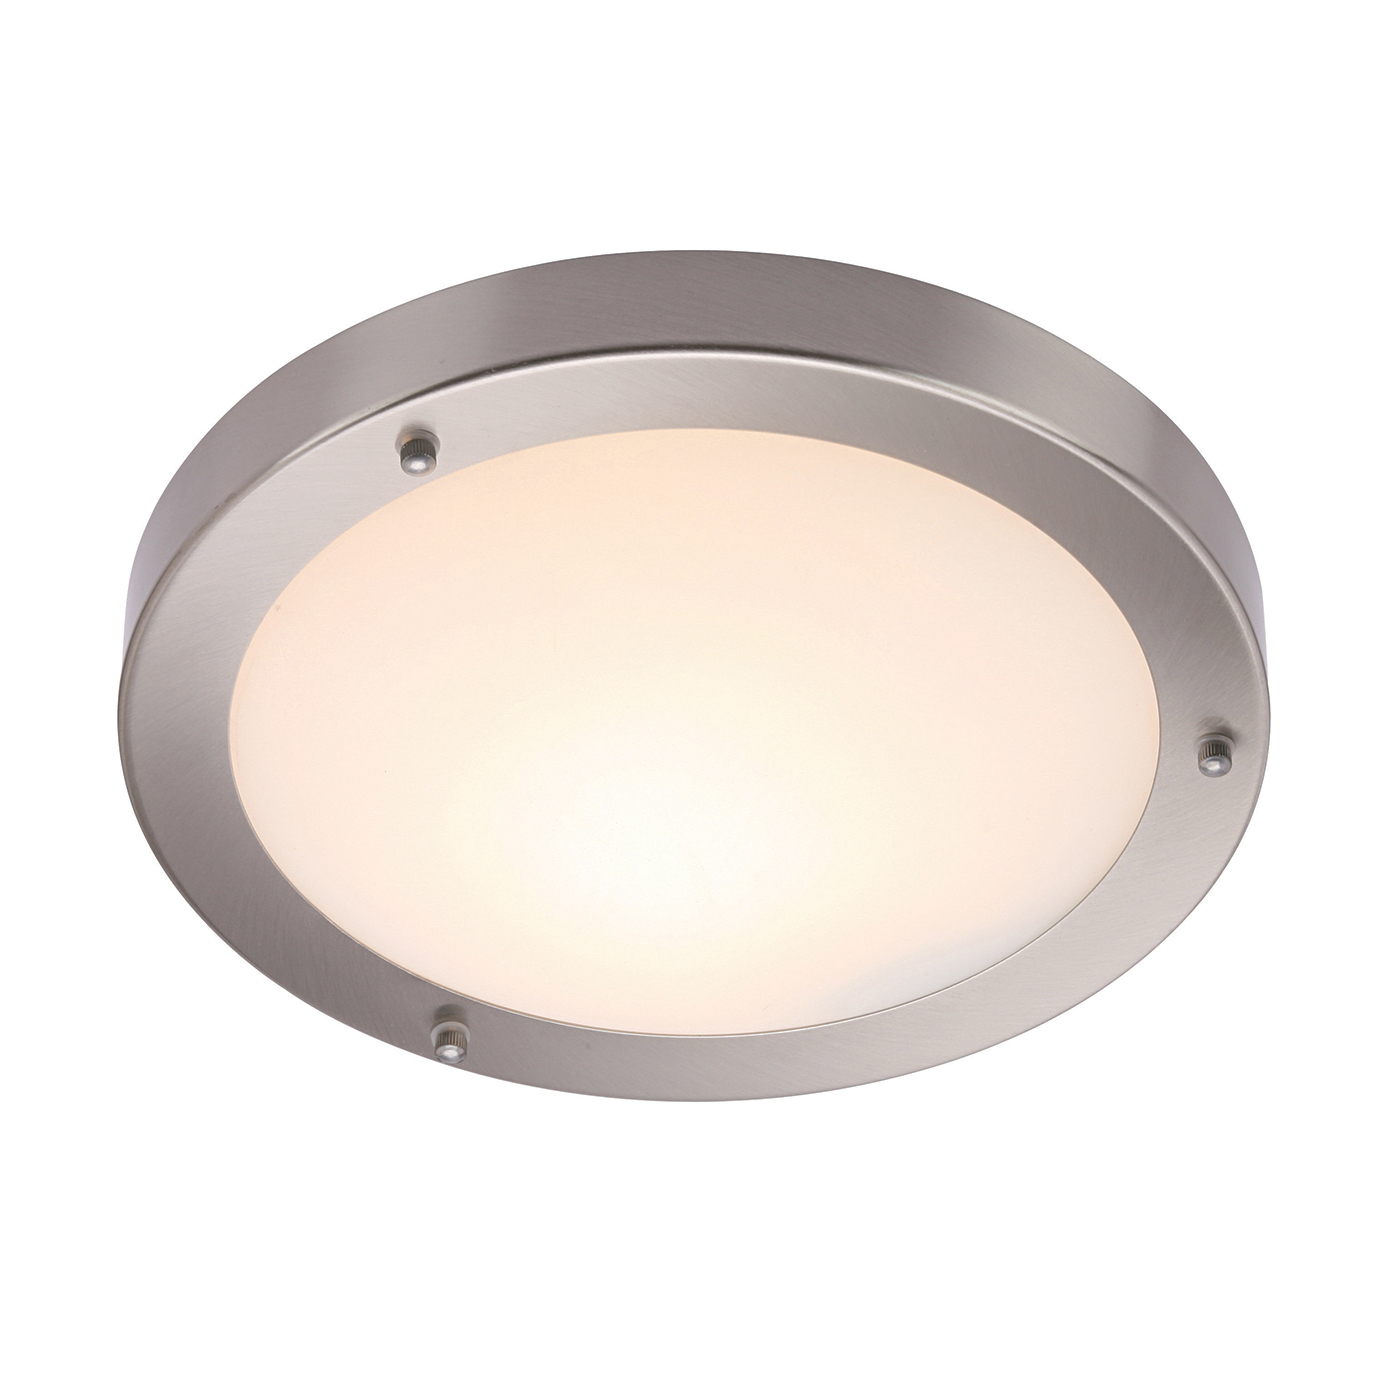 Endon Portico 300mm flush bathroom ceiling light IP44 60W Satin nickel glass